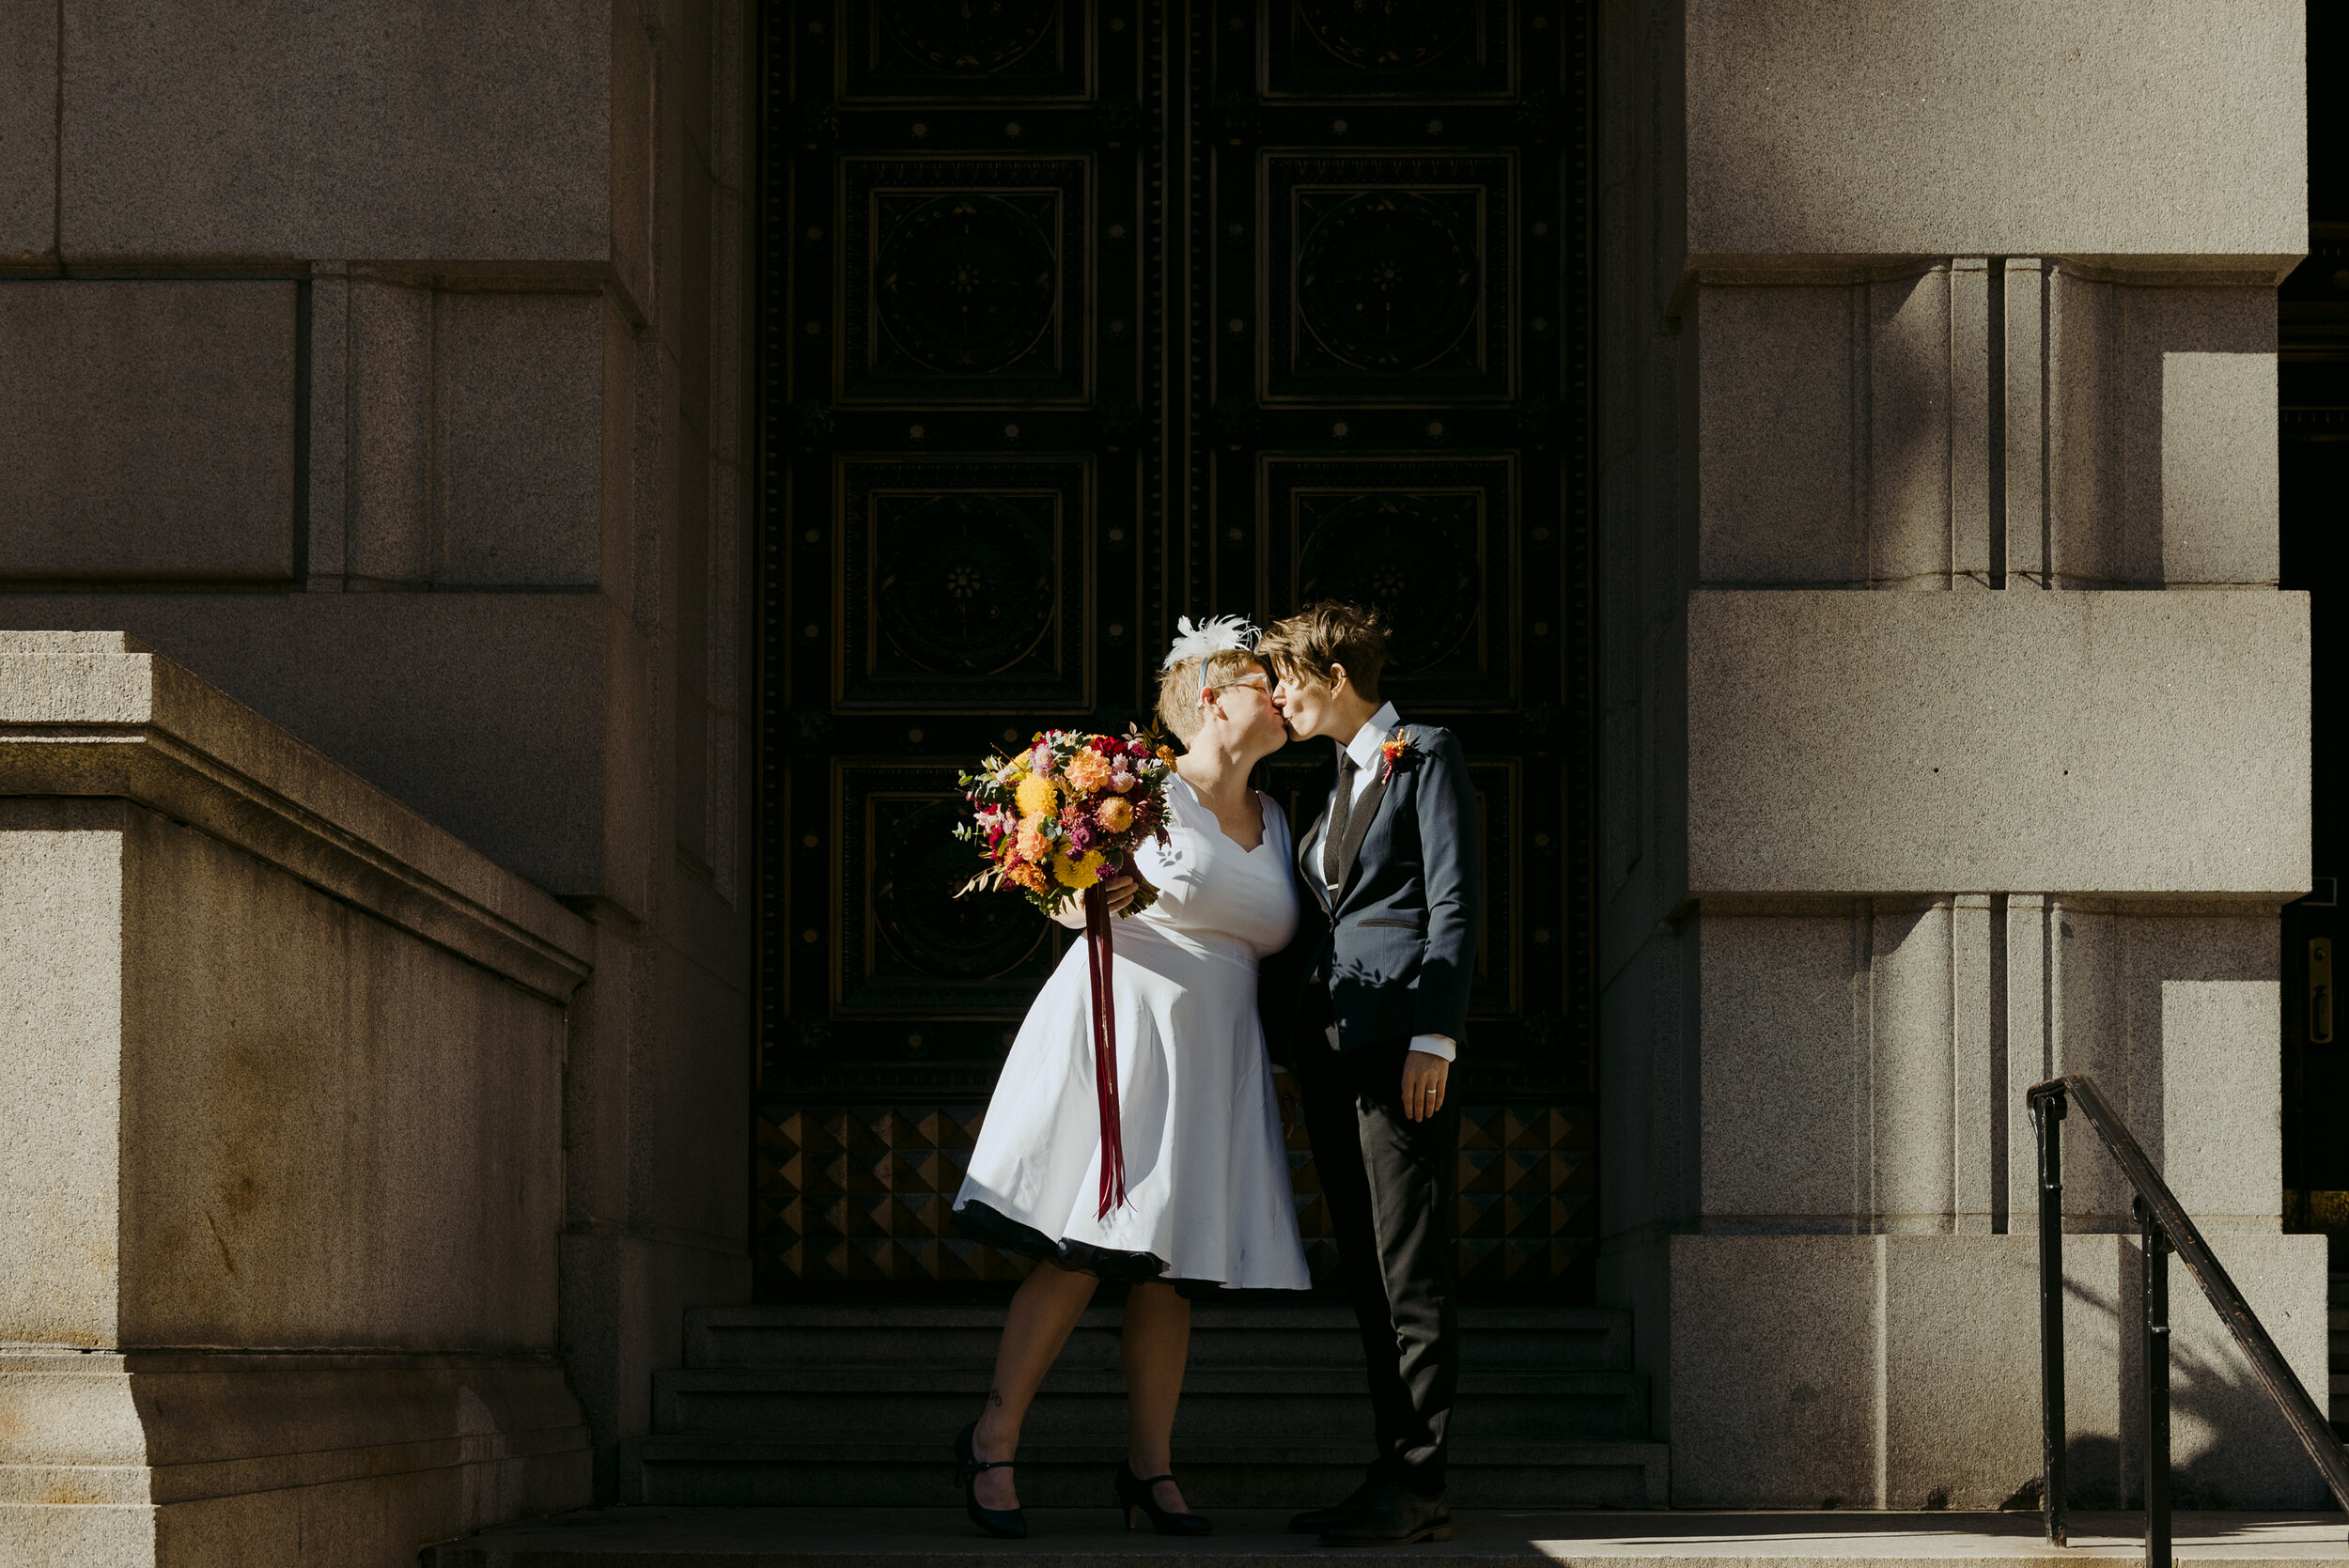 Minnesota Wedding Photographer | Rivets & Roses | Photography by Tara Sloane